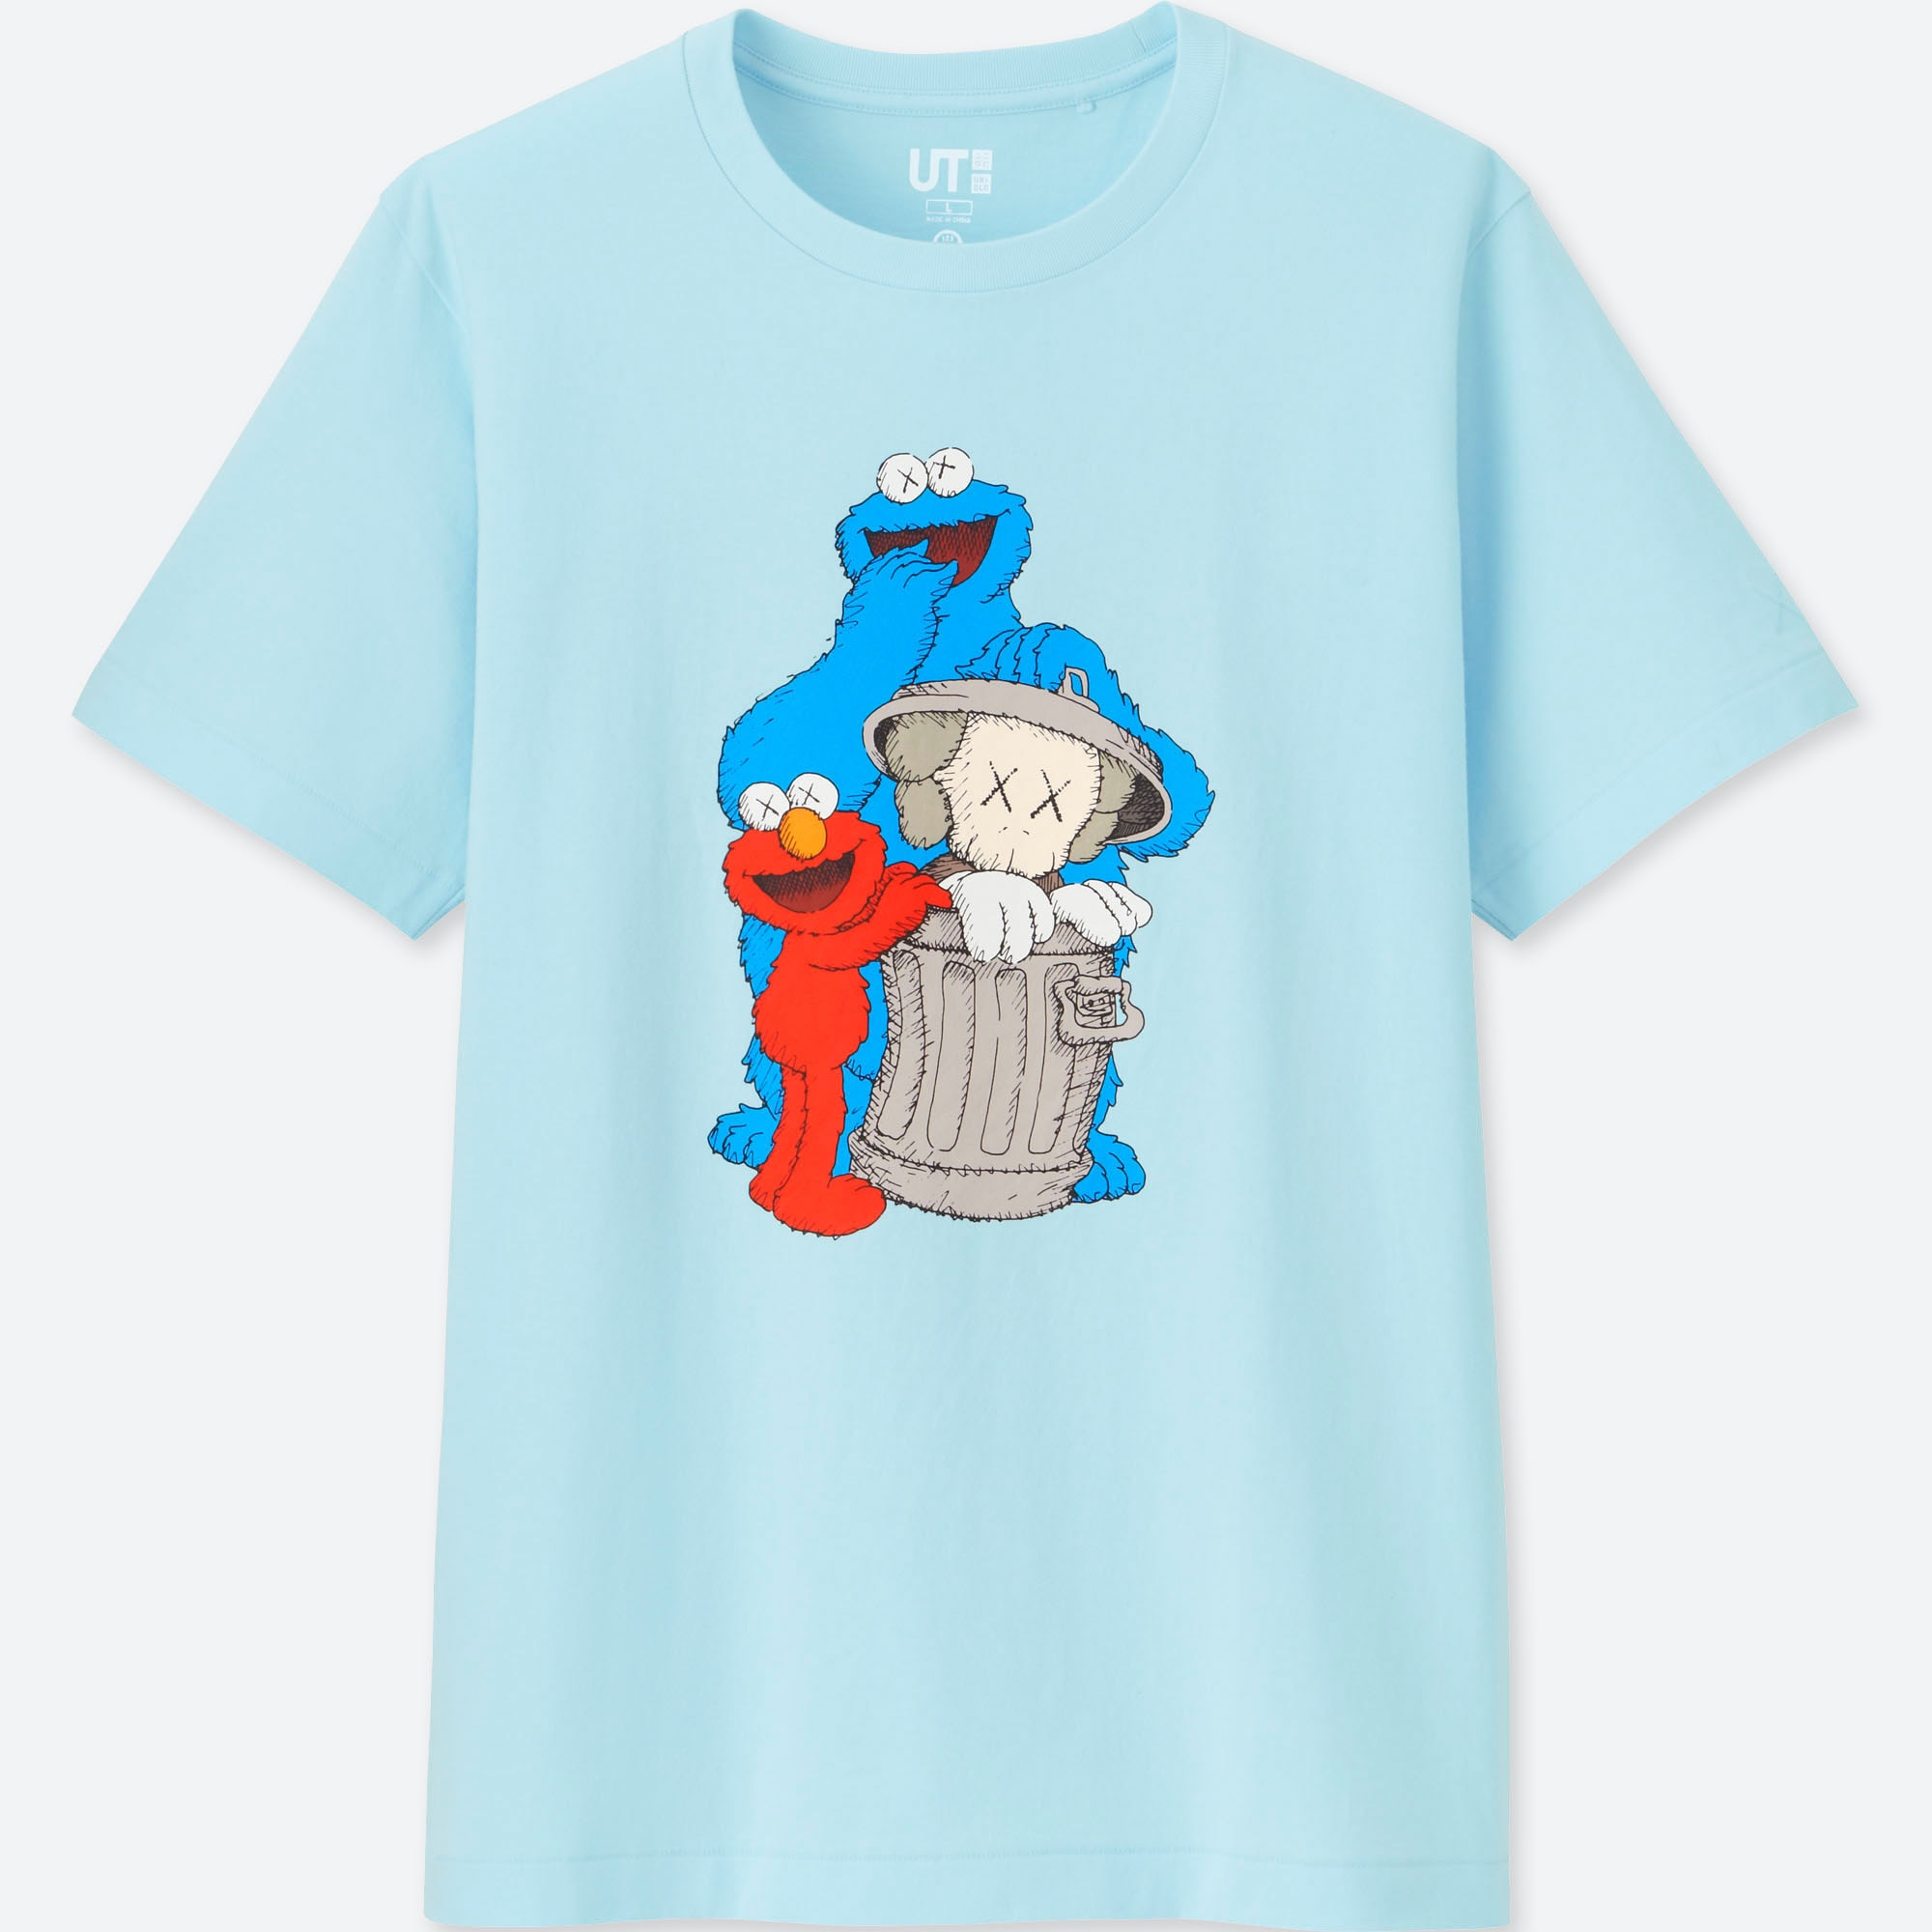 0c3071292 KAWS X SESAME STREET UT (SHORT-SLEEVE GRAPHIC T-SHIRT) | UNIQLO US